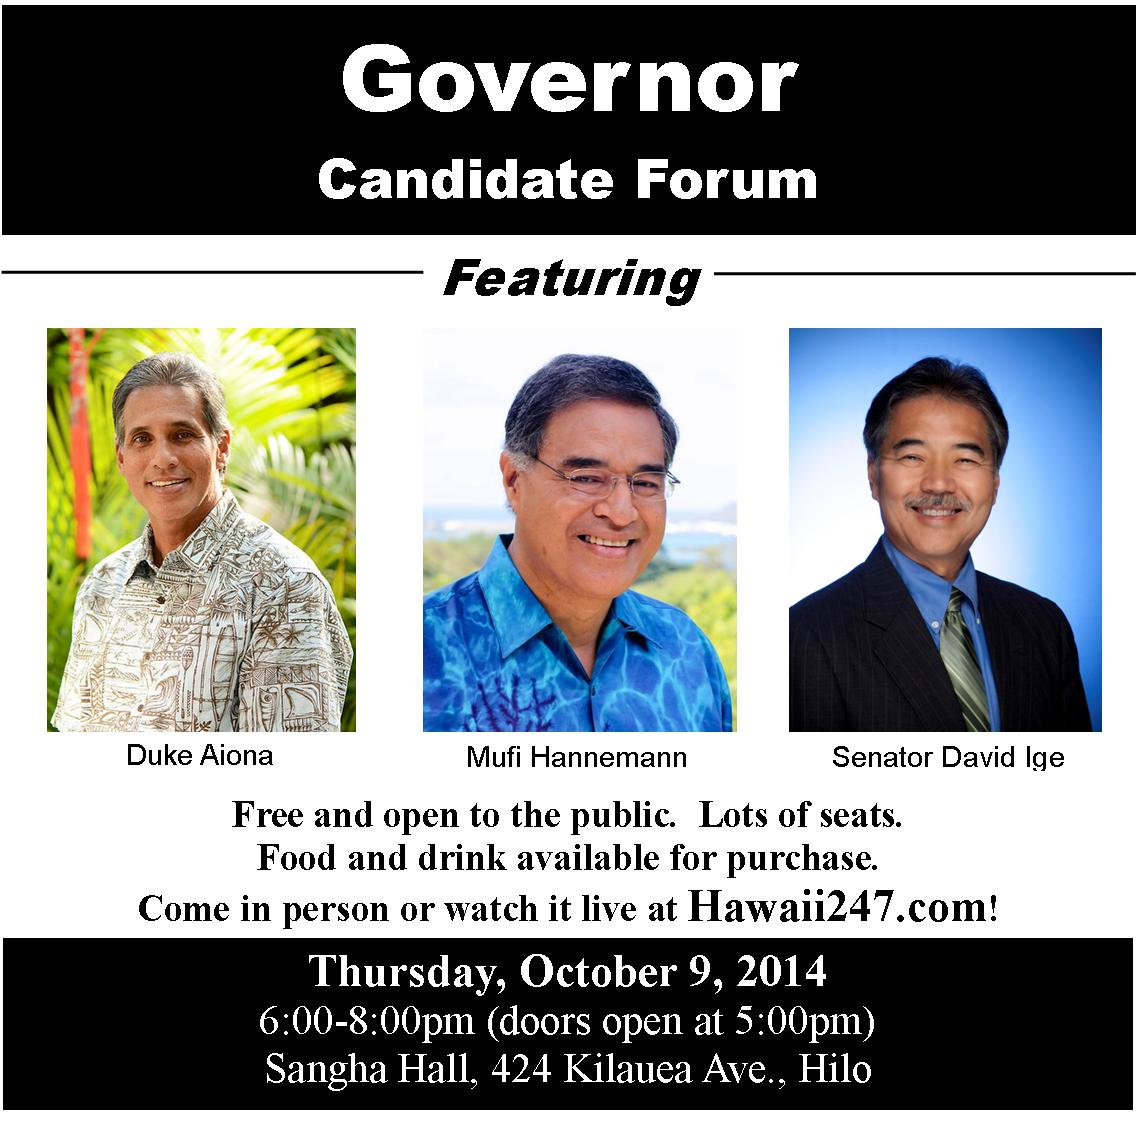 Gov candidate forum FB 2014